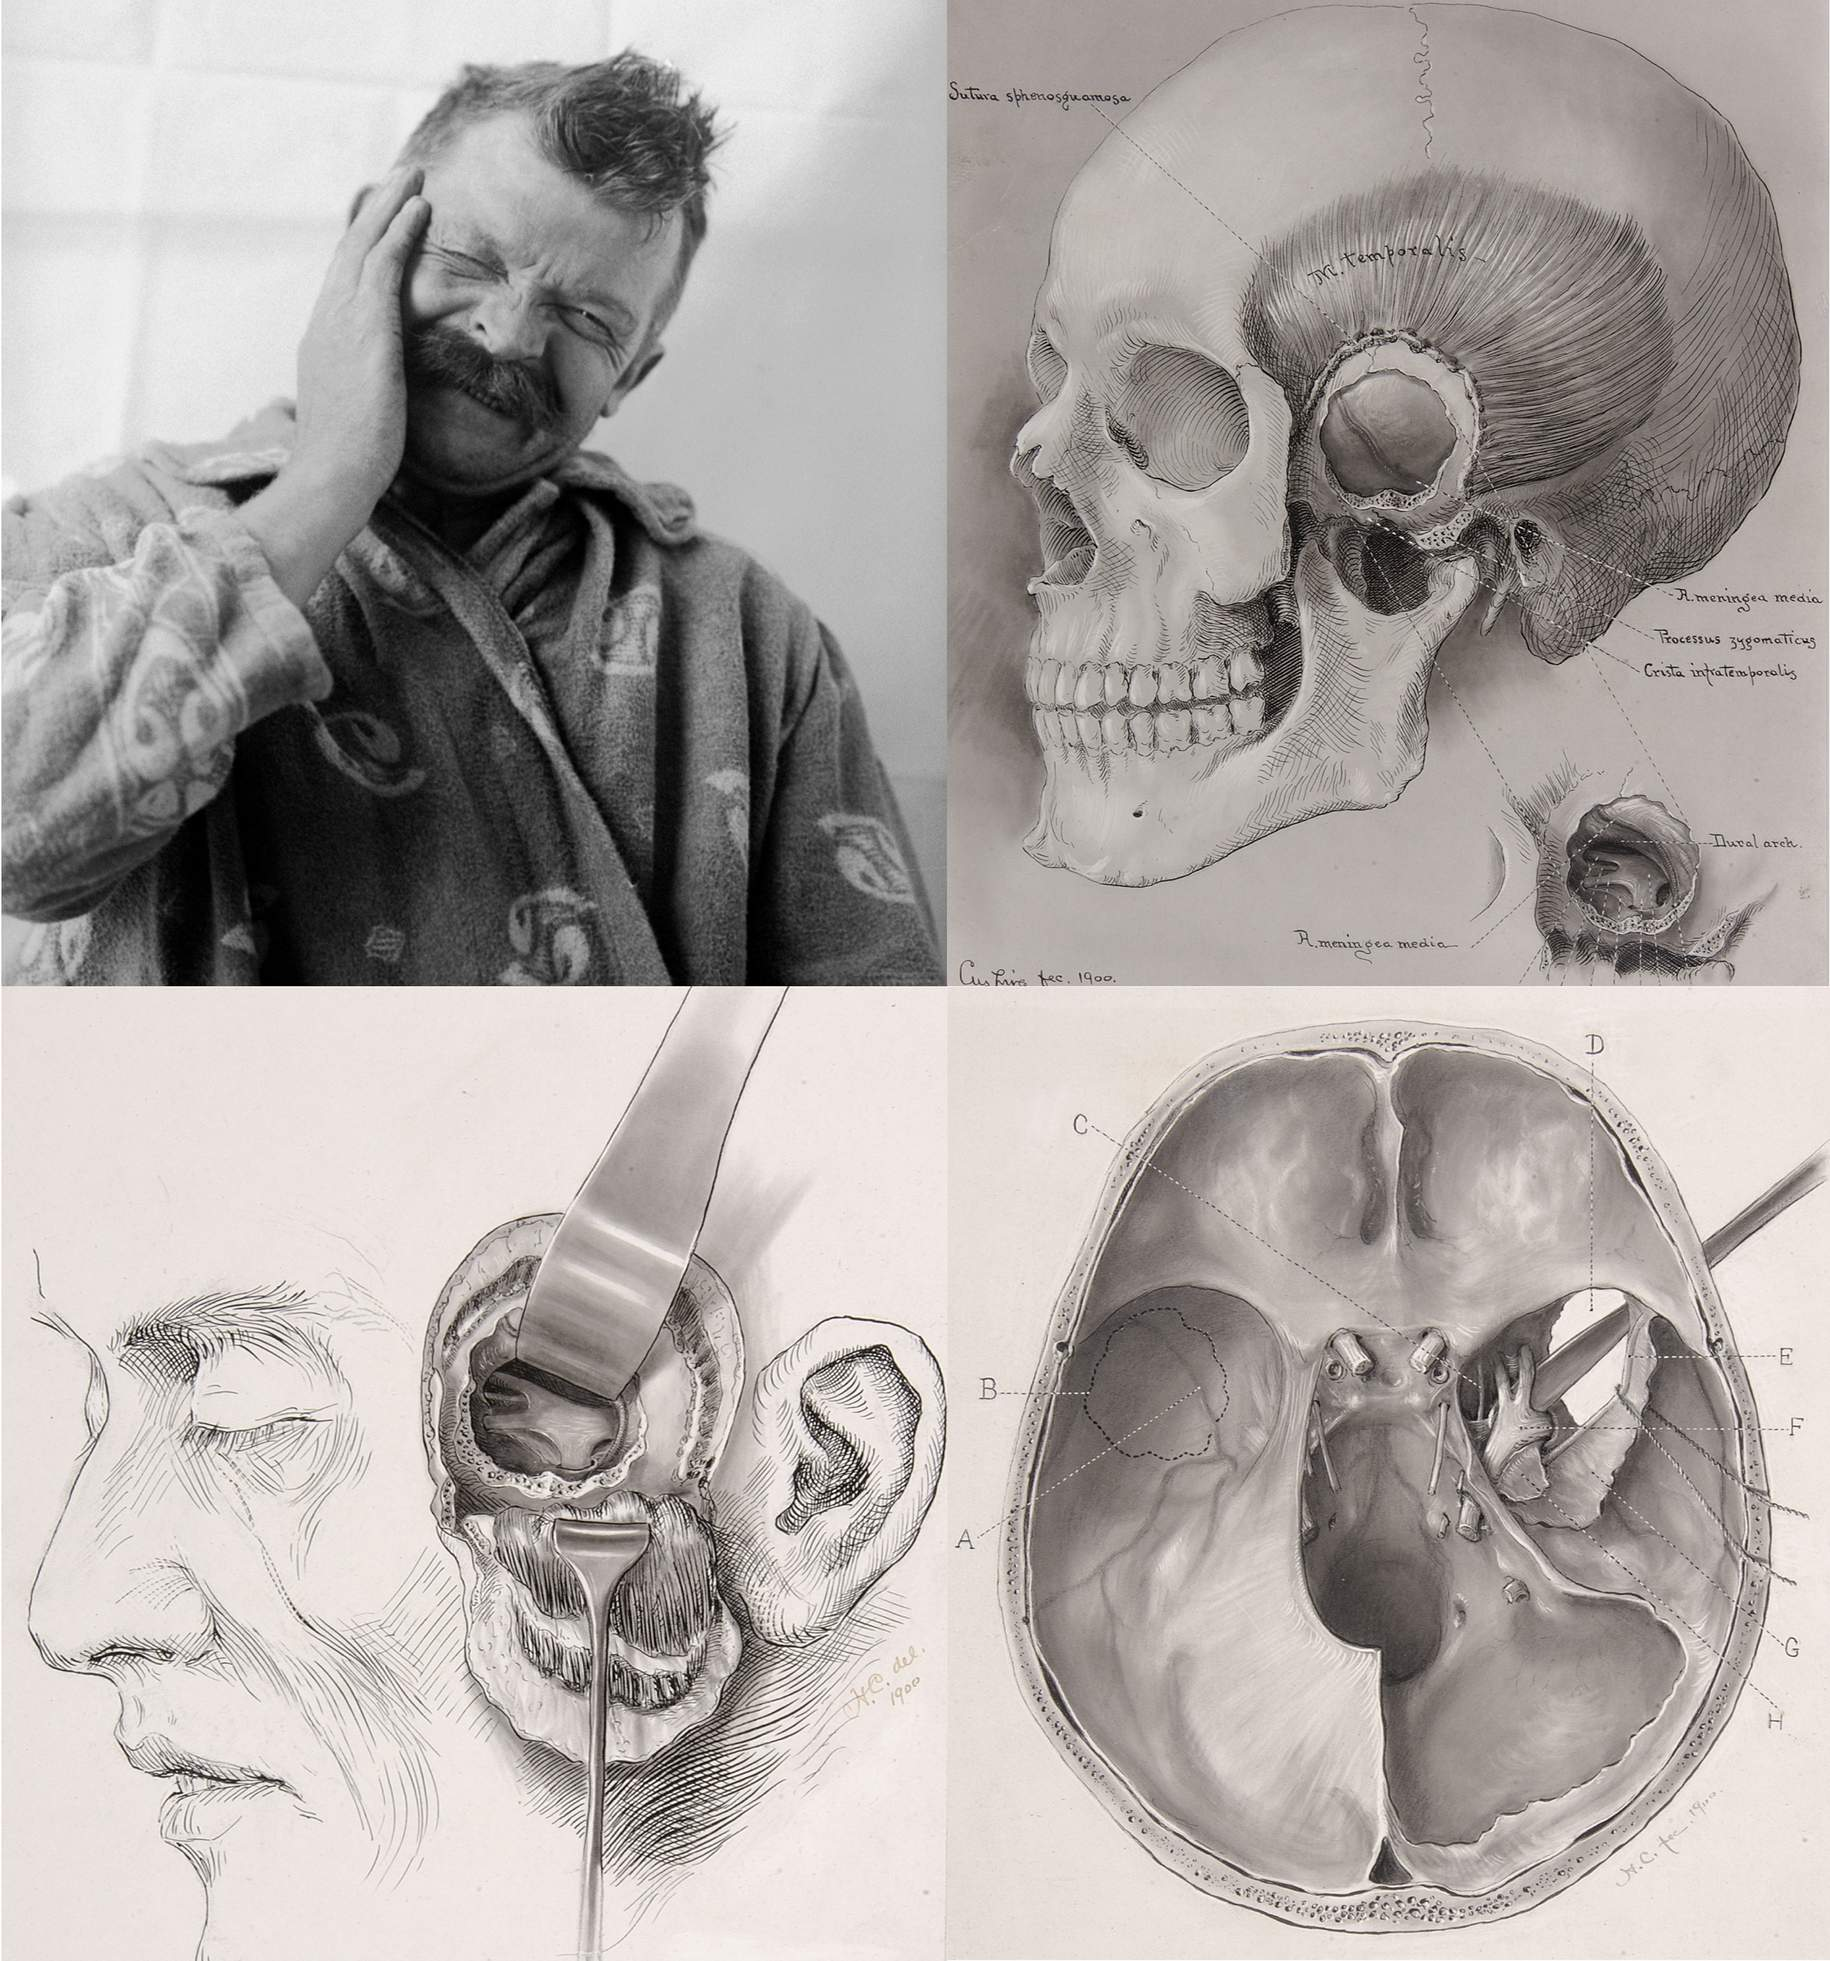 Figure 1: One of the first patients of Harvey Cushing suffering from an attack of trigeminal neuralgia. This image is most likely one of the earliest photographs of a patient with this disease (top image). Cushing's original sketches demonstrate his technique of subtemporal sensory nerve avulsion (middle and bottom images)(Courtesy of Cushing Center at Yale University).